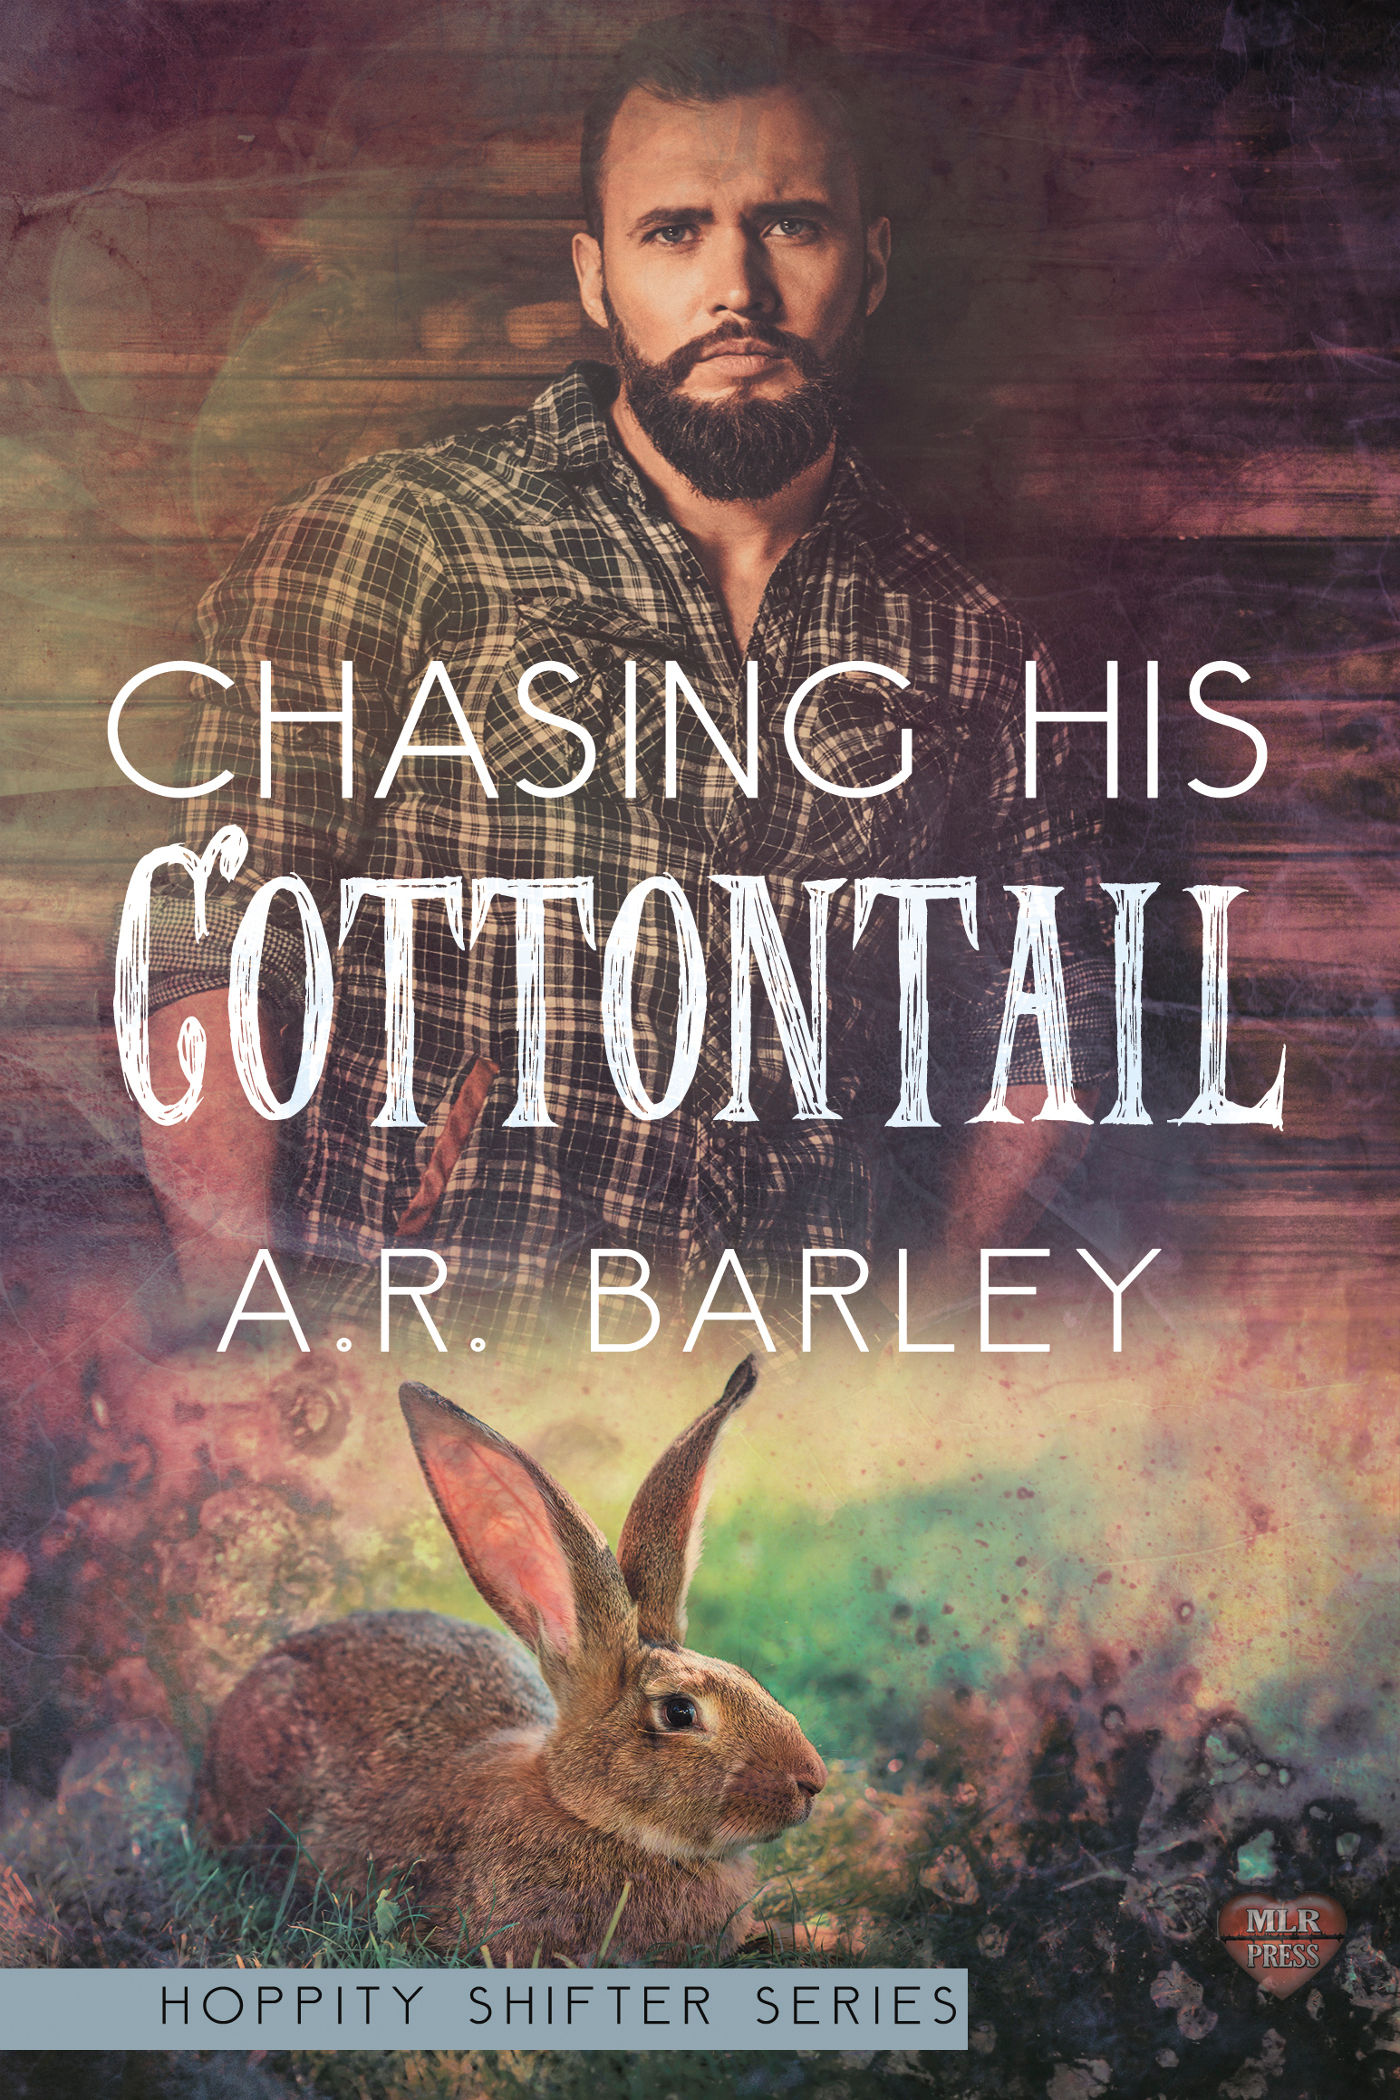 Review: Chasing His Cottontail by A.R. Barley